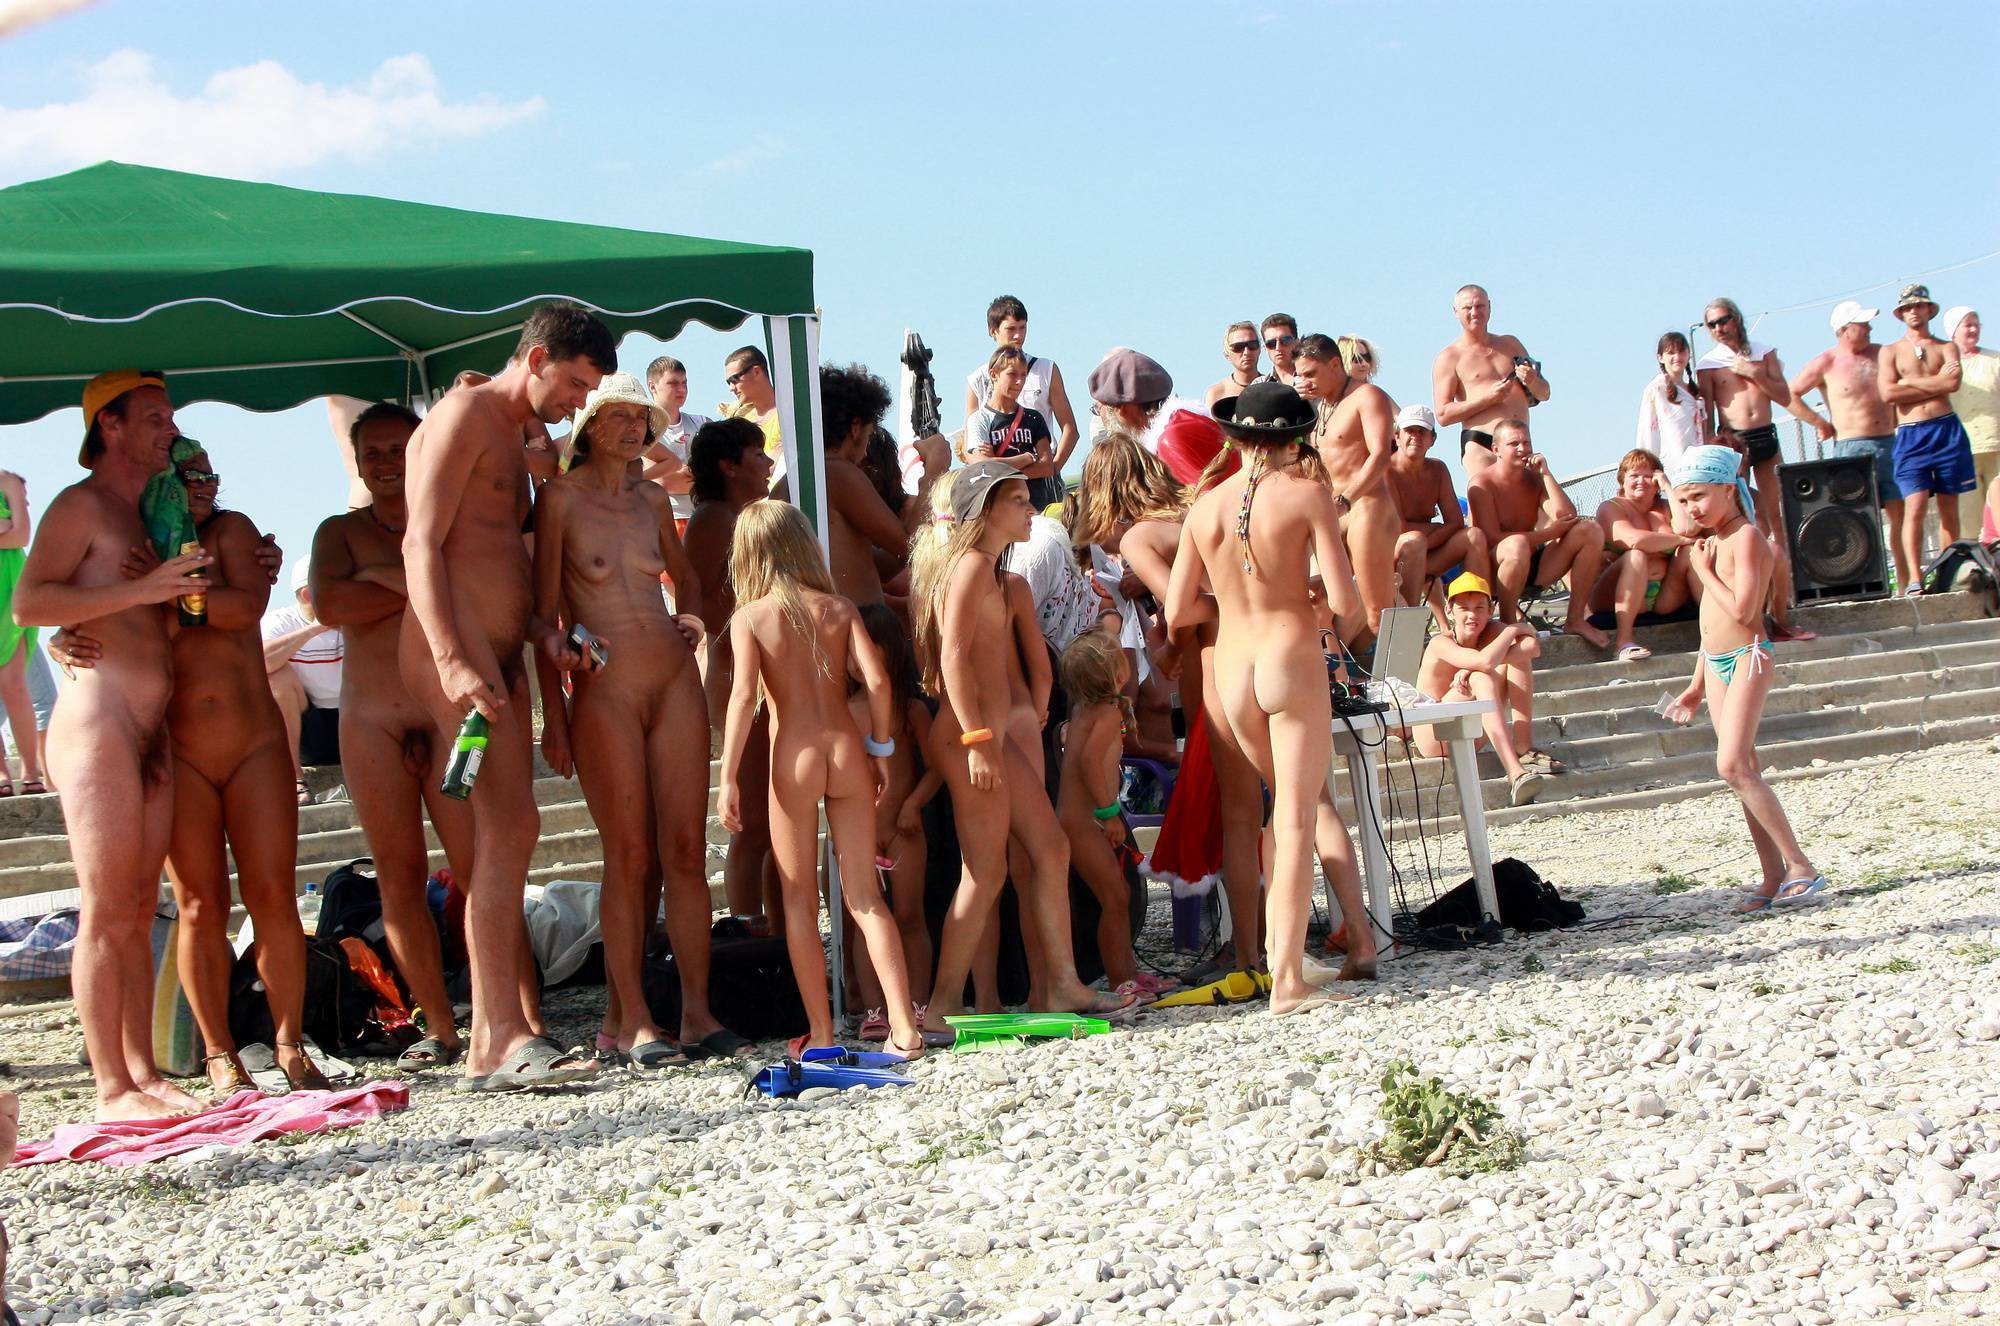 Nudist Pictures Kids Nudist Chase Game - 2